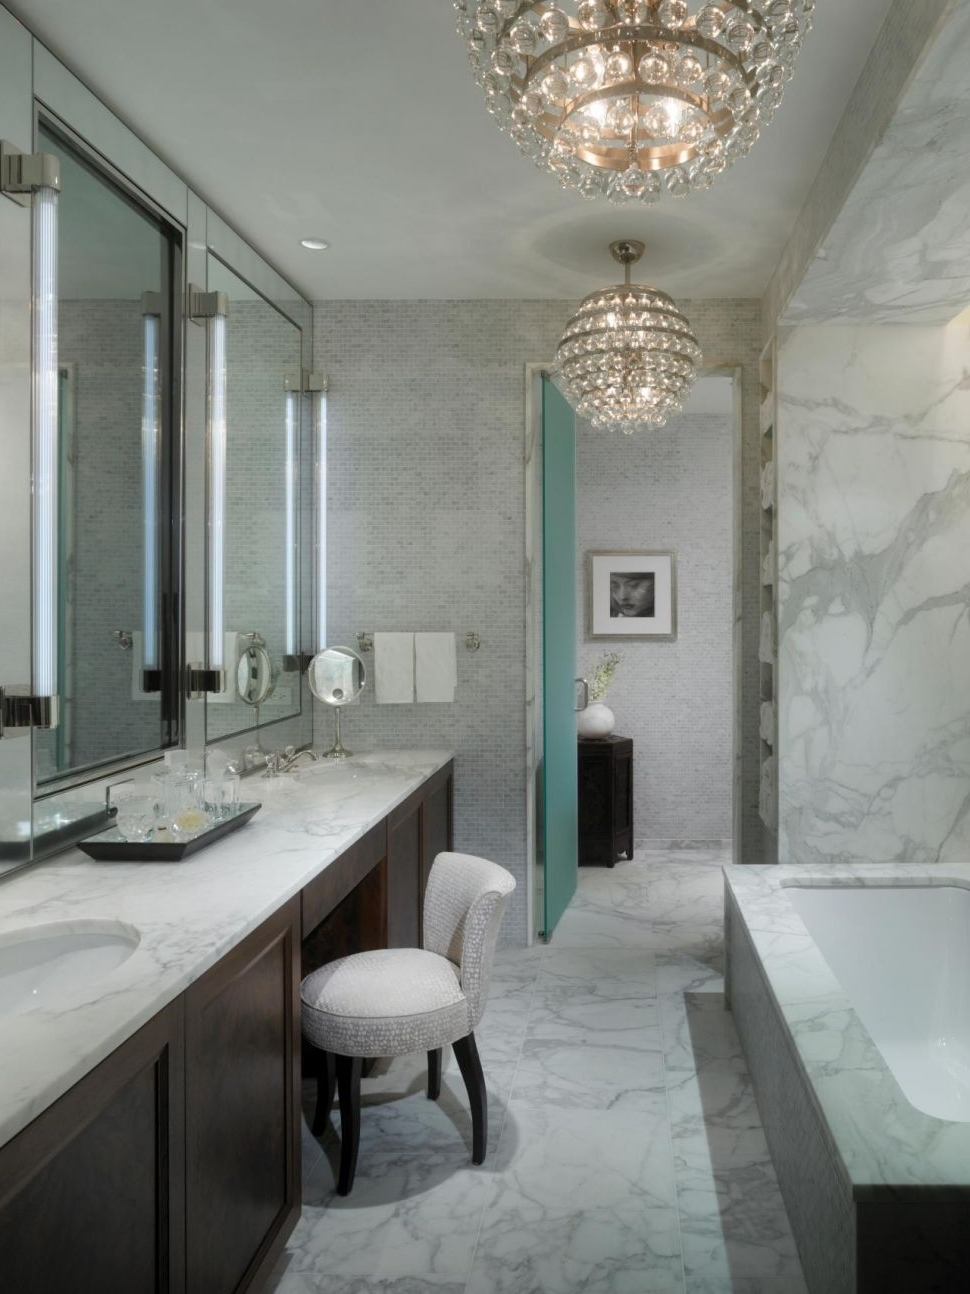 Crystal Bathroom Chandelier Within Most Up To Date Chandeliers : Mini Chandelier For Bathroom New Bathroom Ideas (View 5 of 15)